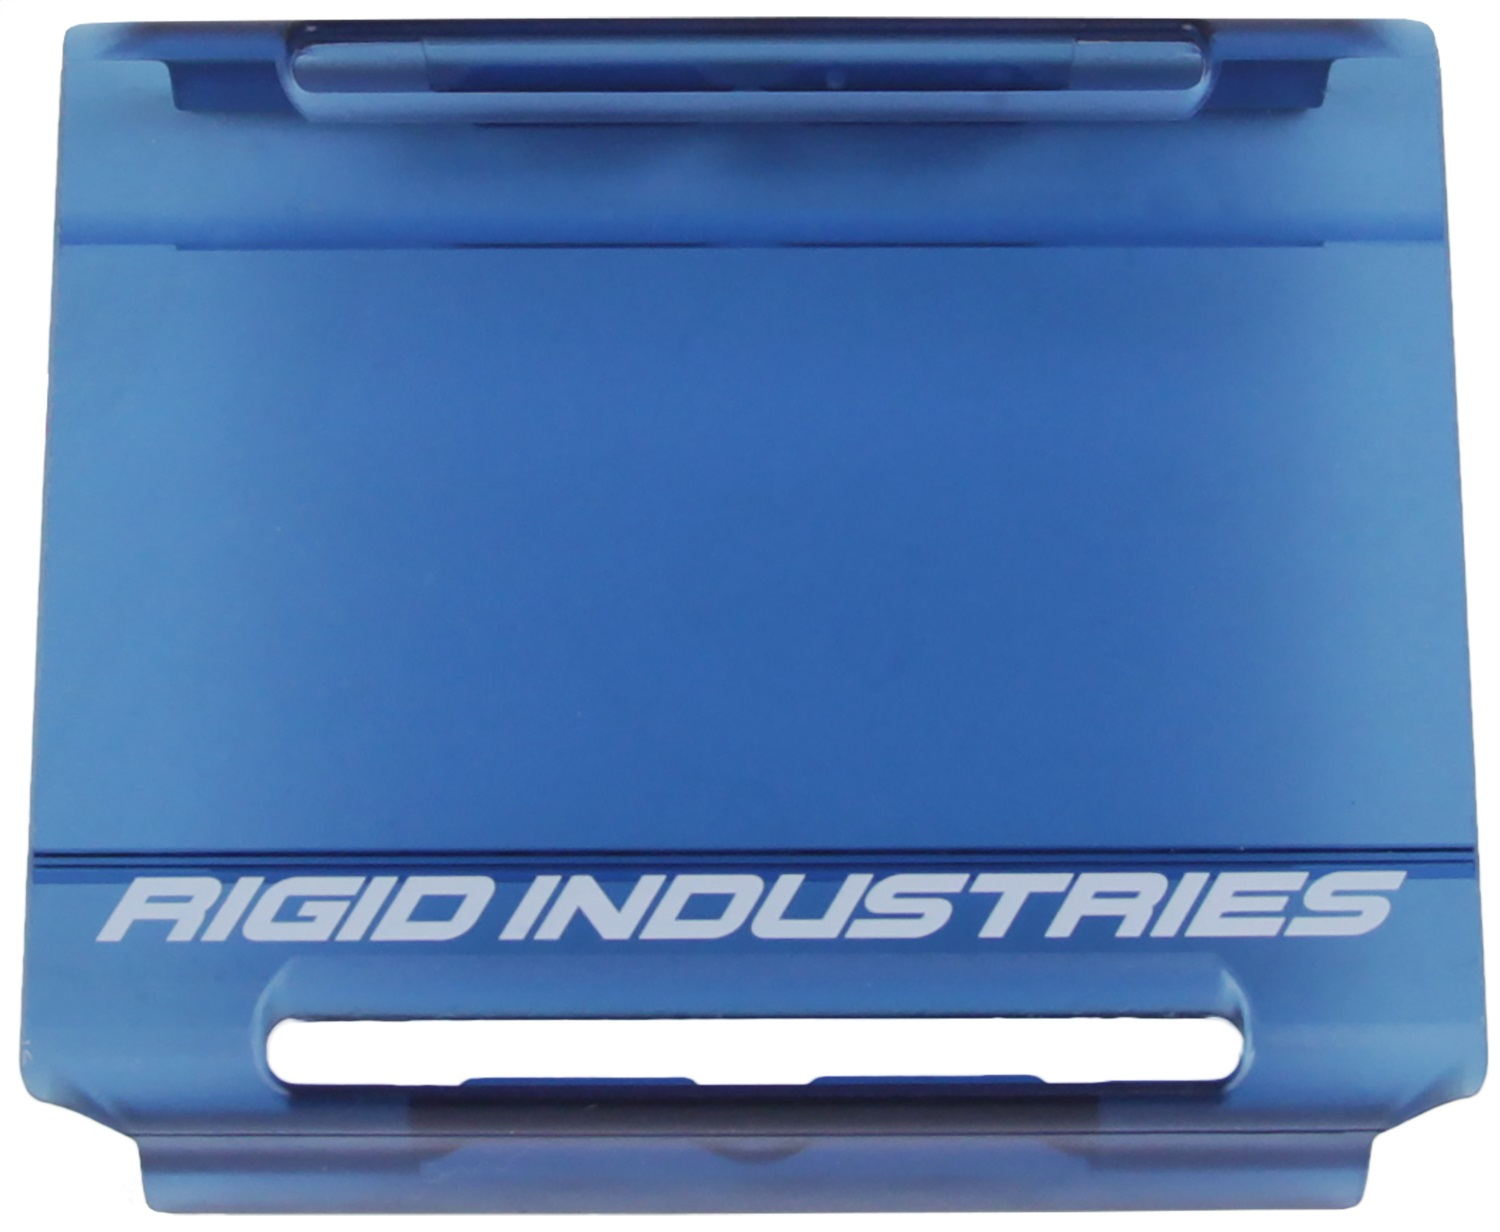 Rigid Industries 10694 EM Series Light Cover